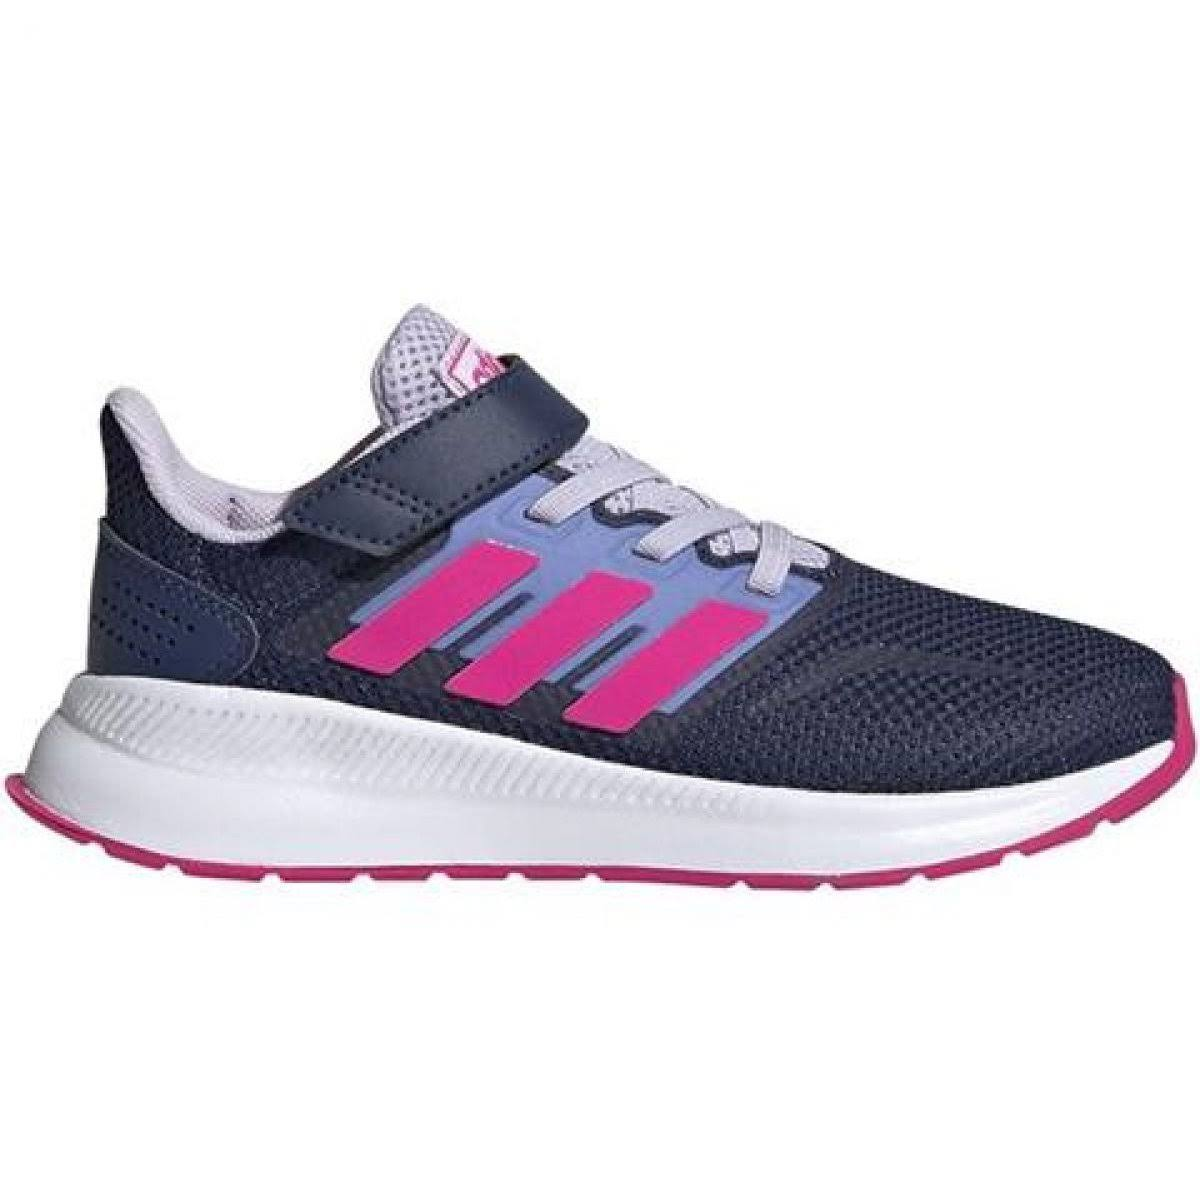 Adidas Shoes (Trainers) Runfalcon C